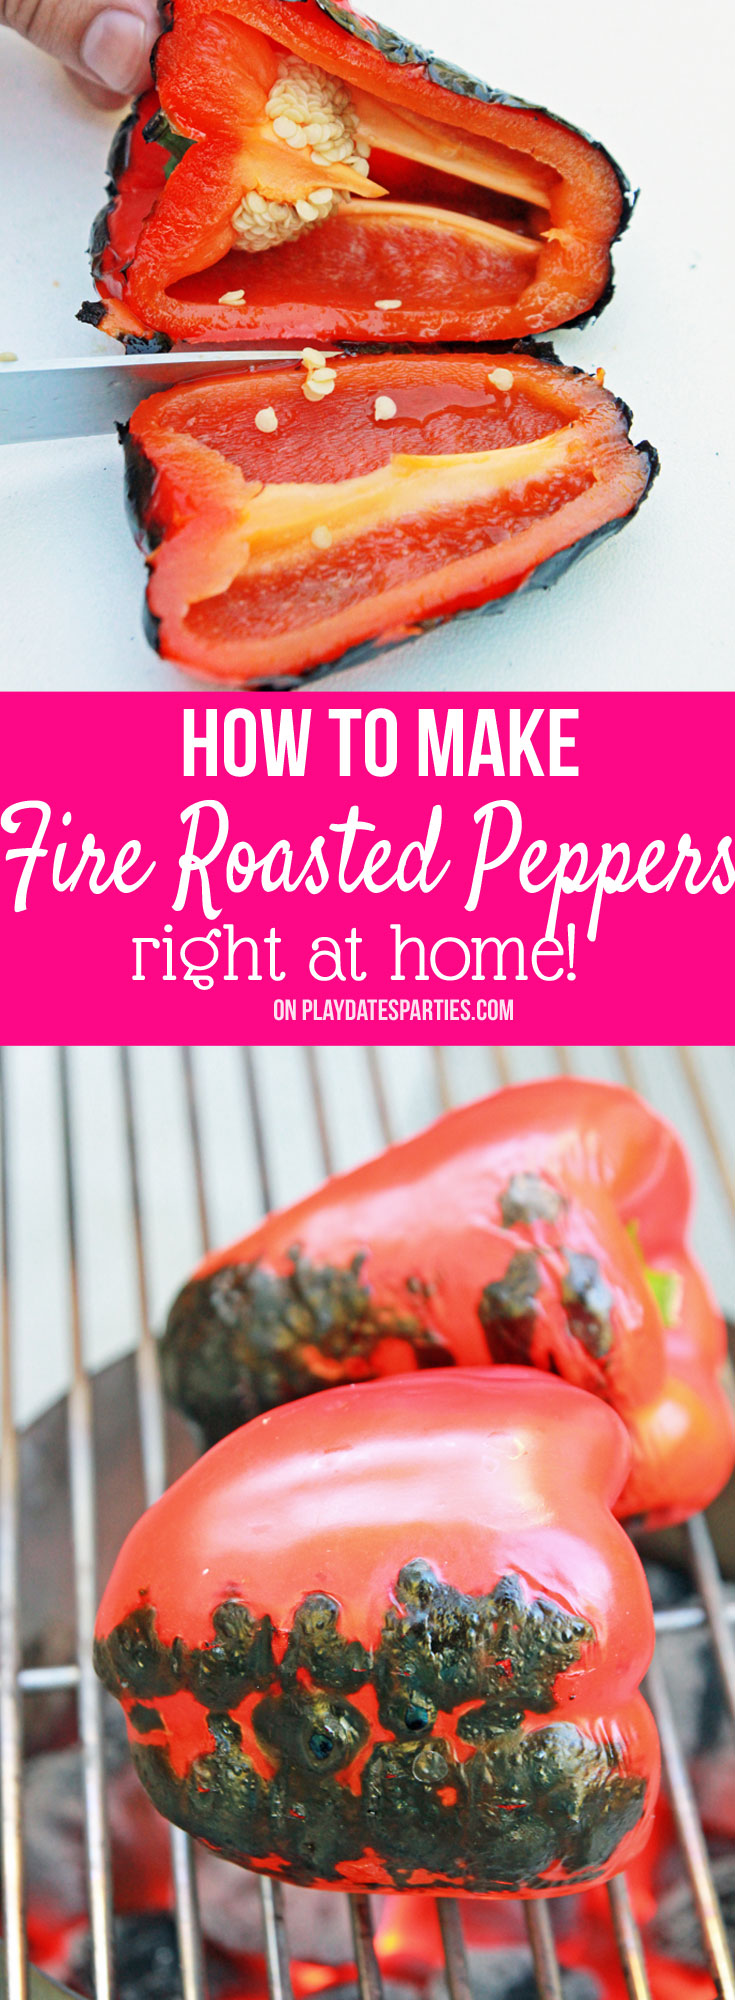 Leave the oven off and learn how to make fire-roasted peppers at home. You'll love the bold flavor added by using an open flame!